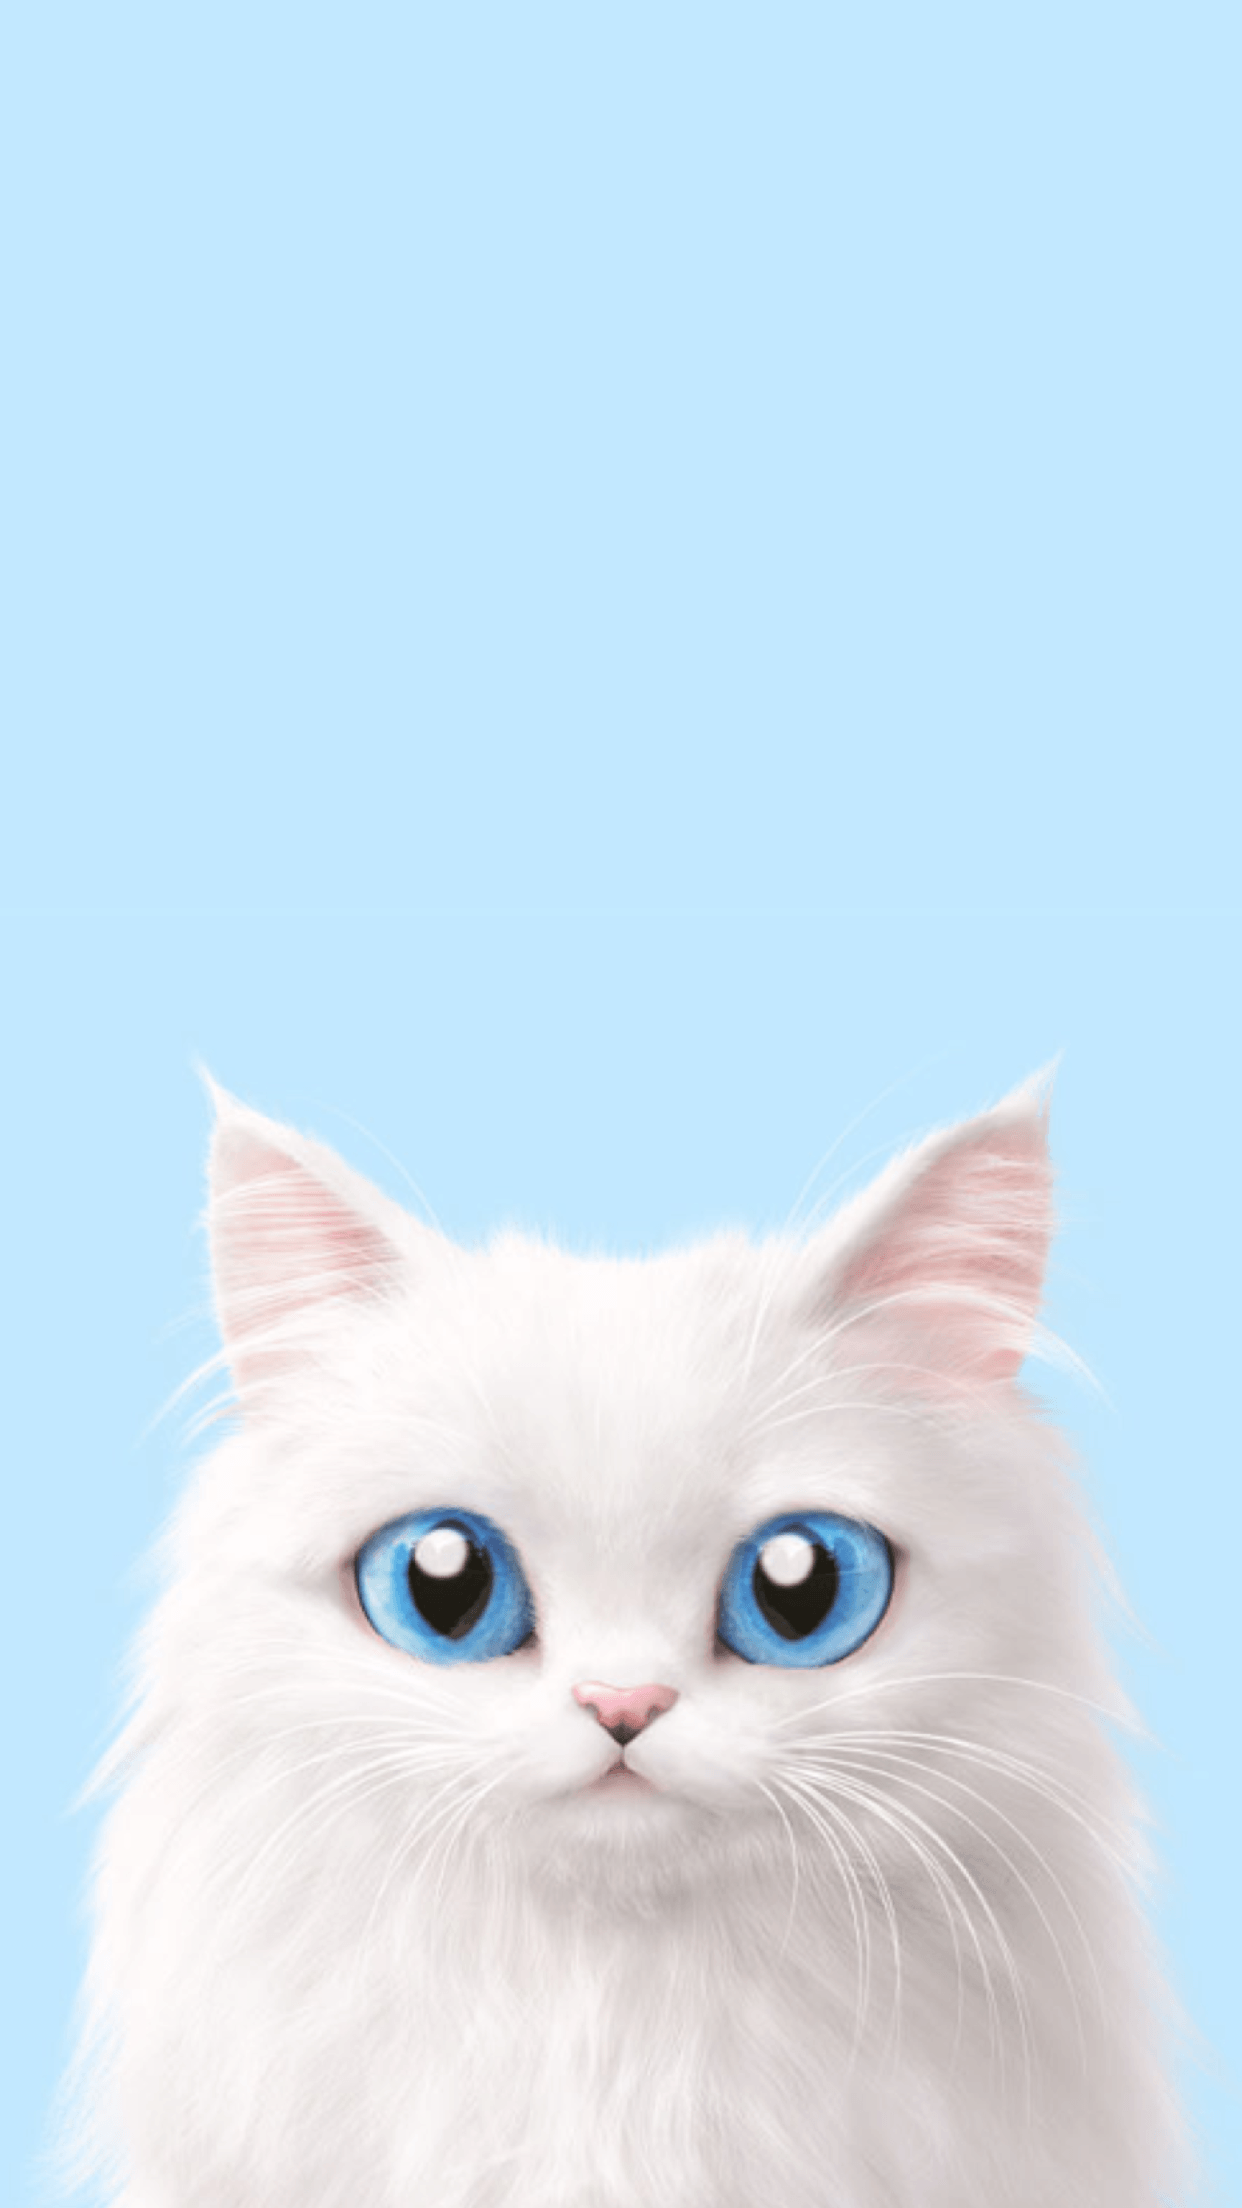 Cat Wallpapers For Iphone Babangrichie Org